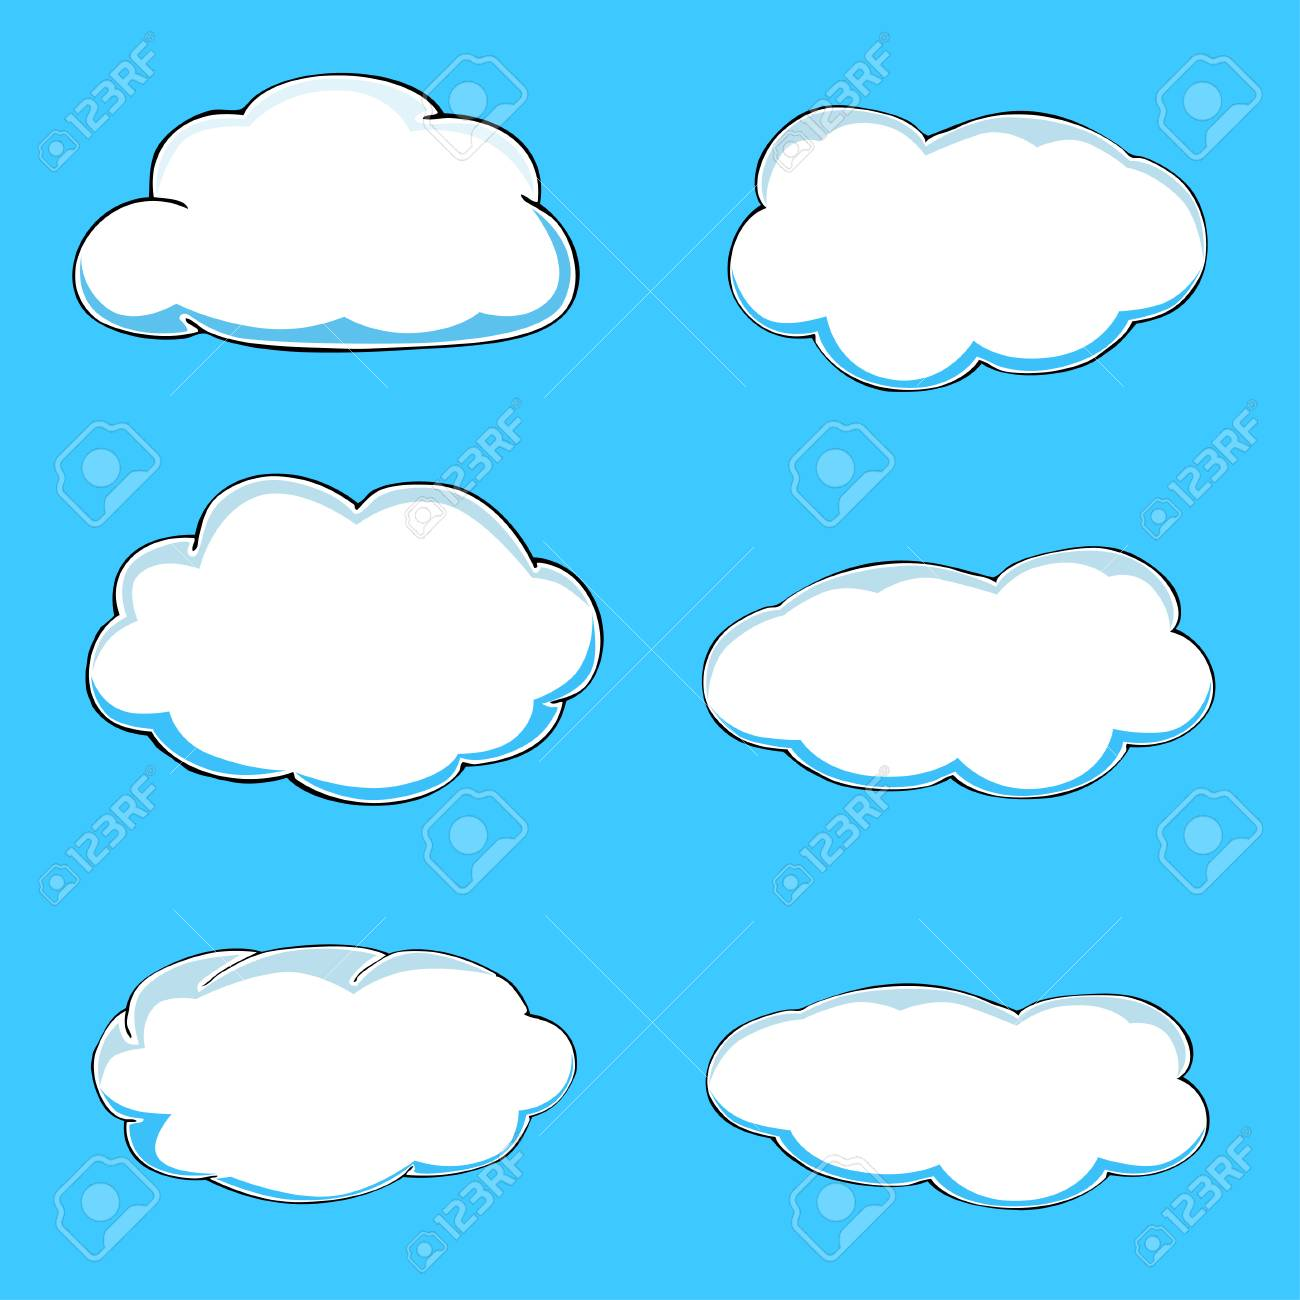 cartoon clouds illustration on blue background vector royalty free rh 123rf com cloud vector free cloud vectors free download